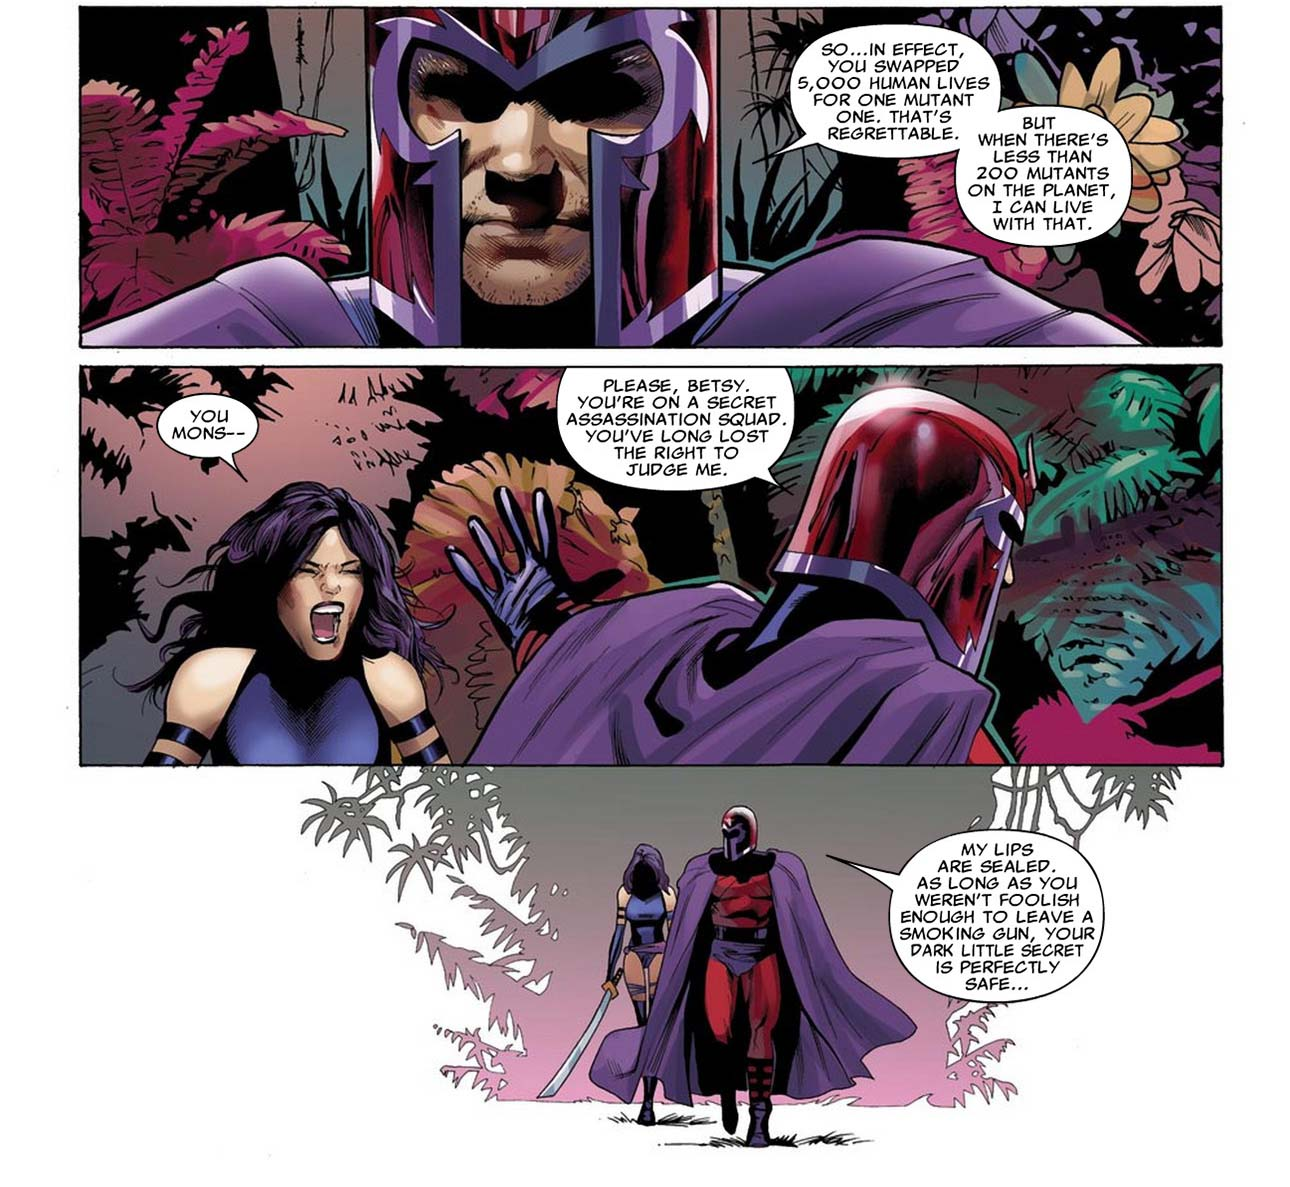 magneto burns psylocke